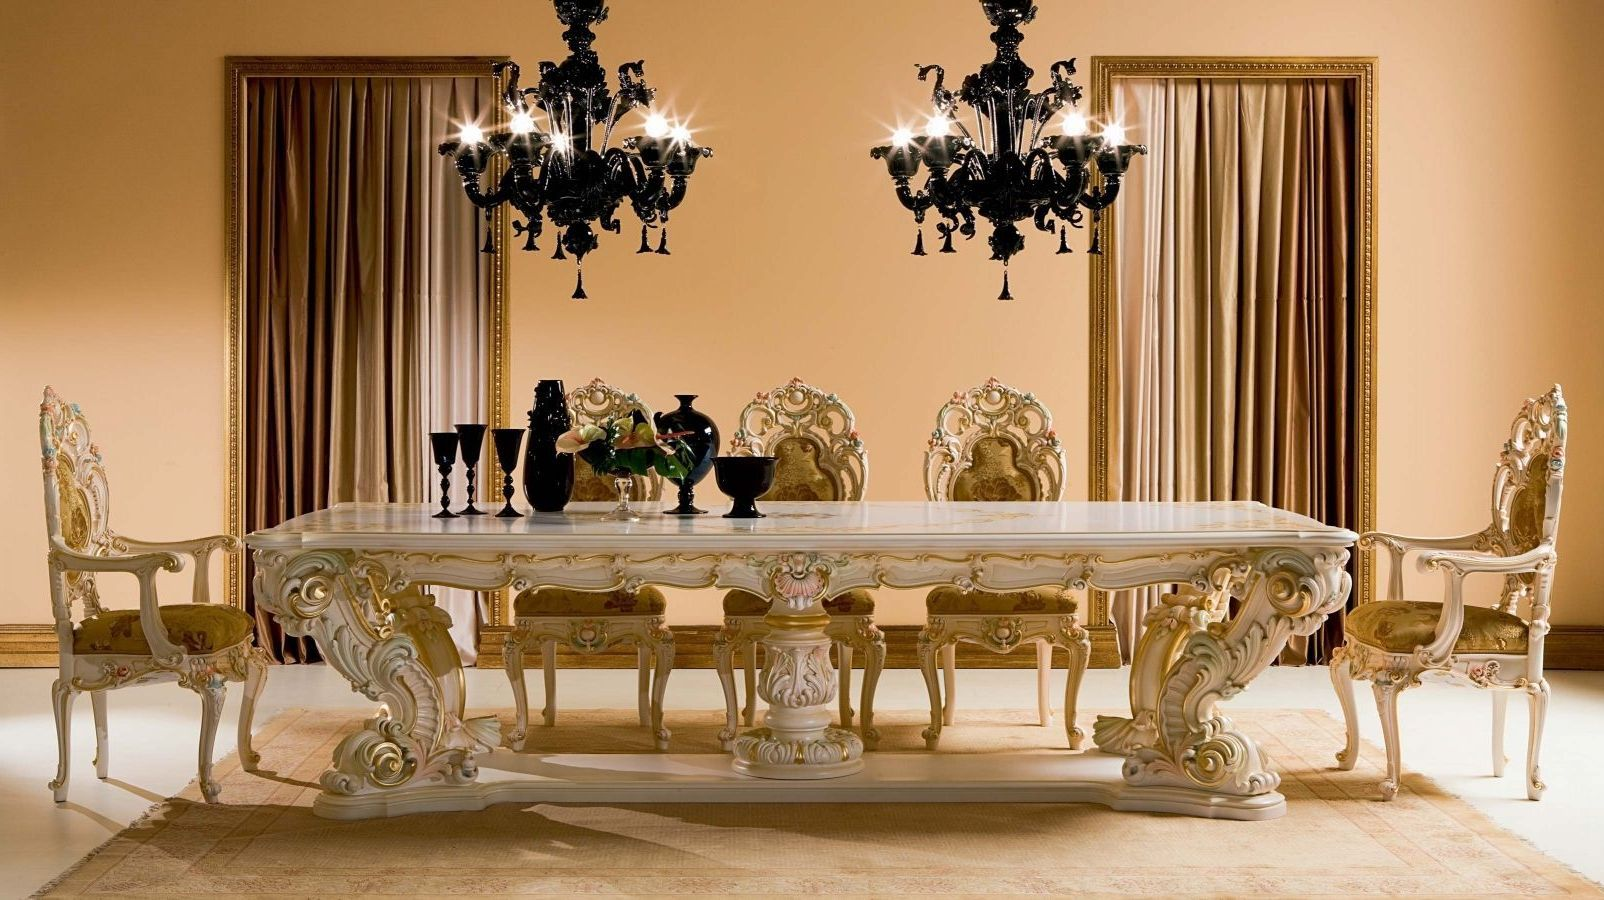 Exclusive Dining Room Furniture  Modern Luxury Furniture Check Unique Luxury Dining Room Furniture Design Inspiration